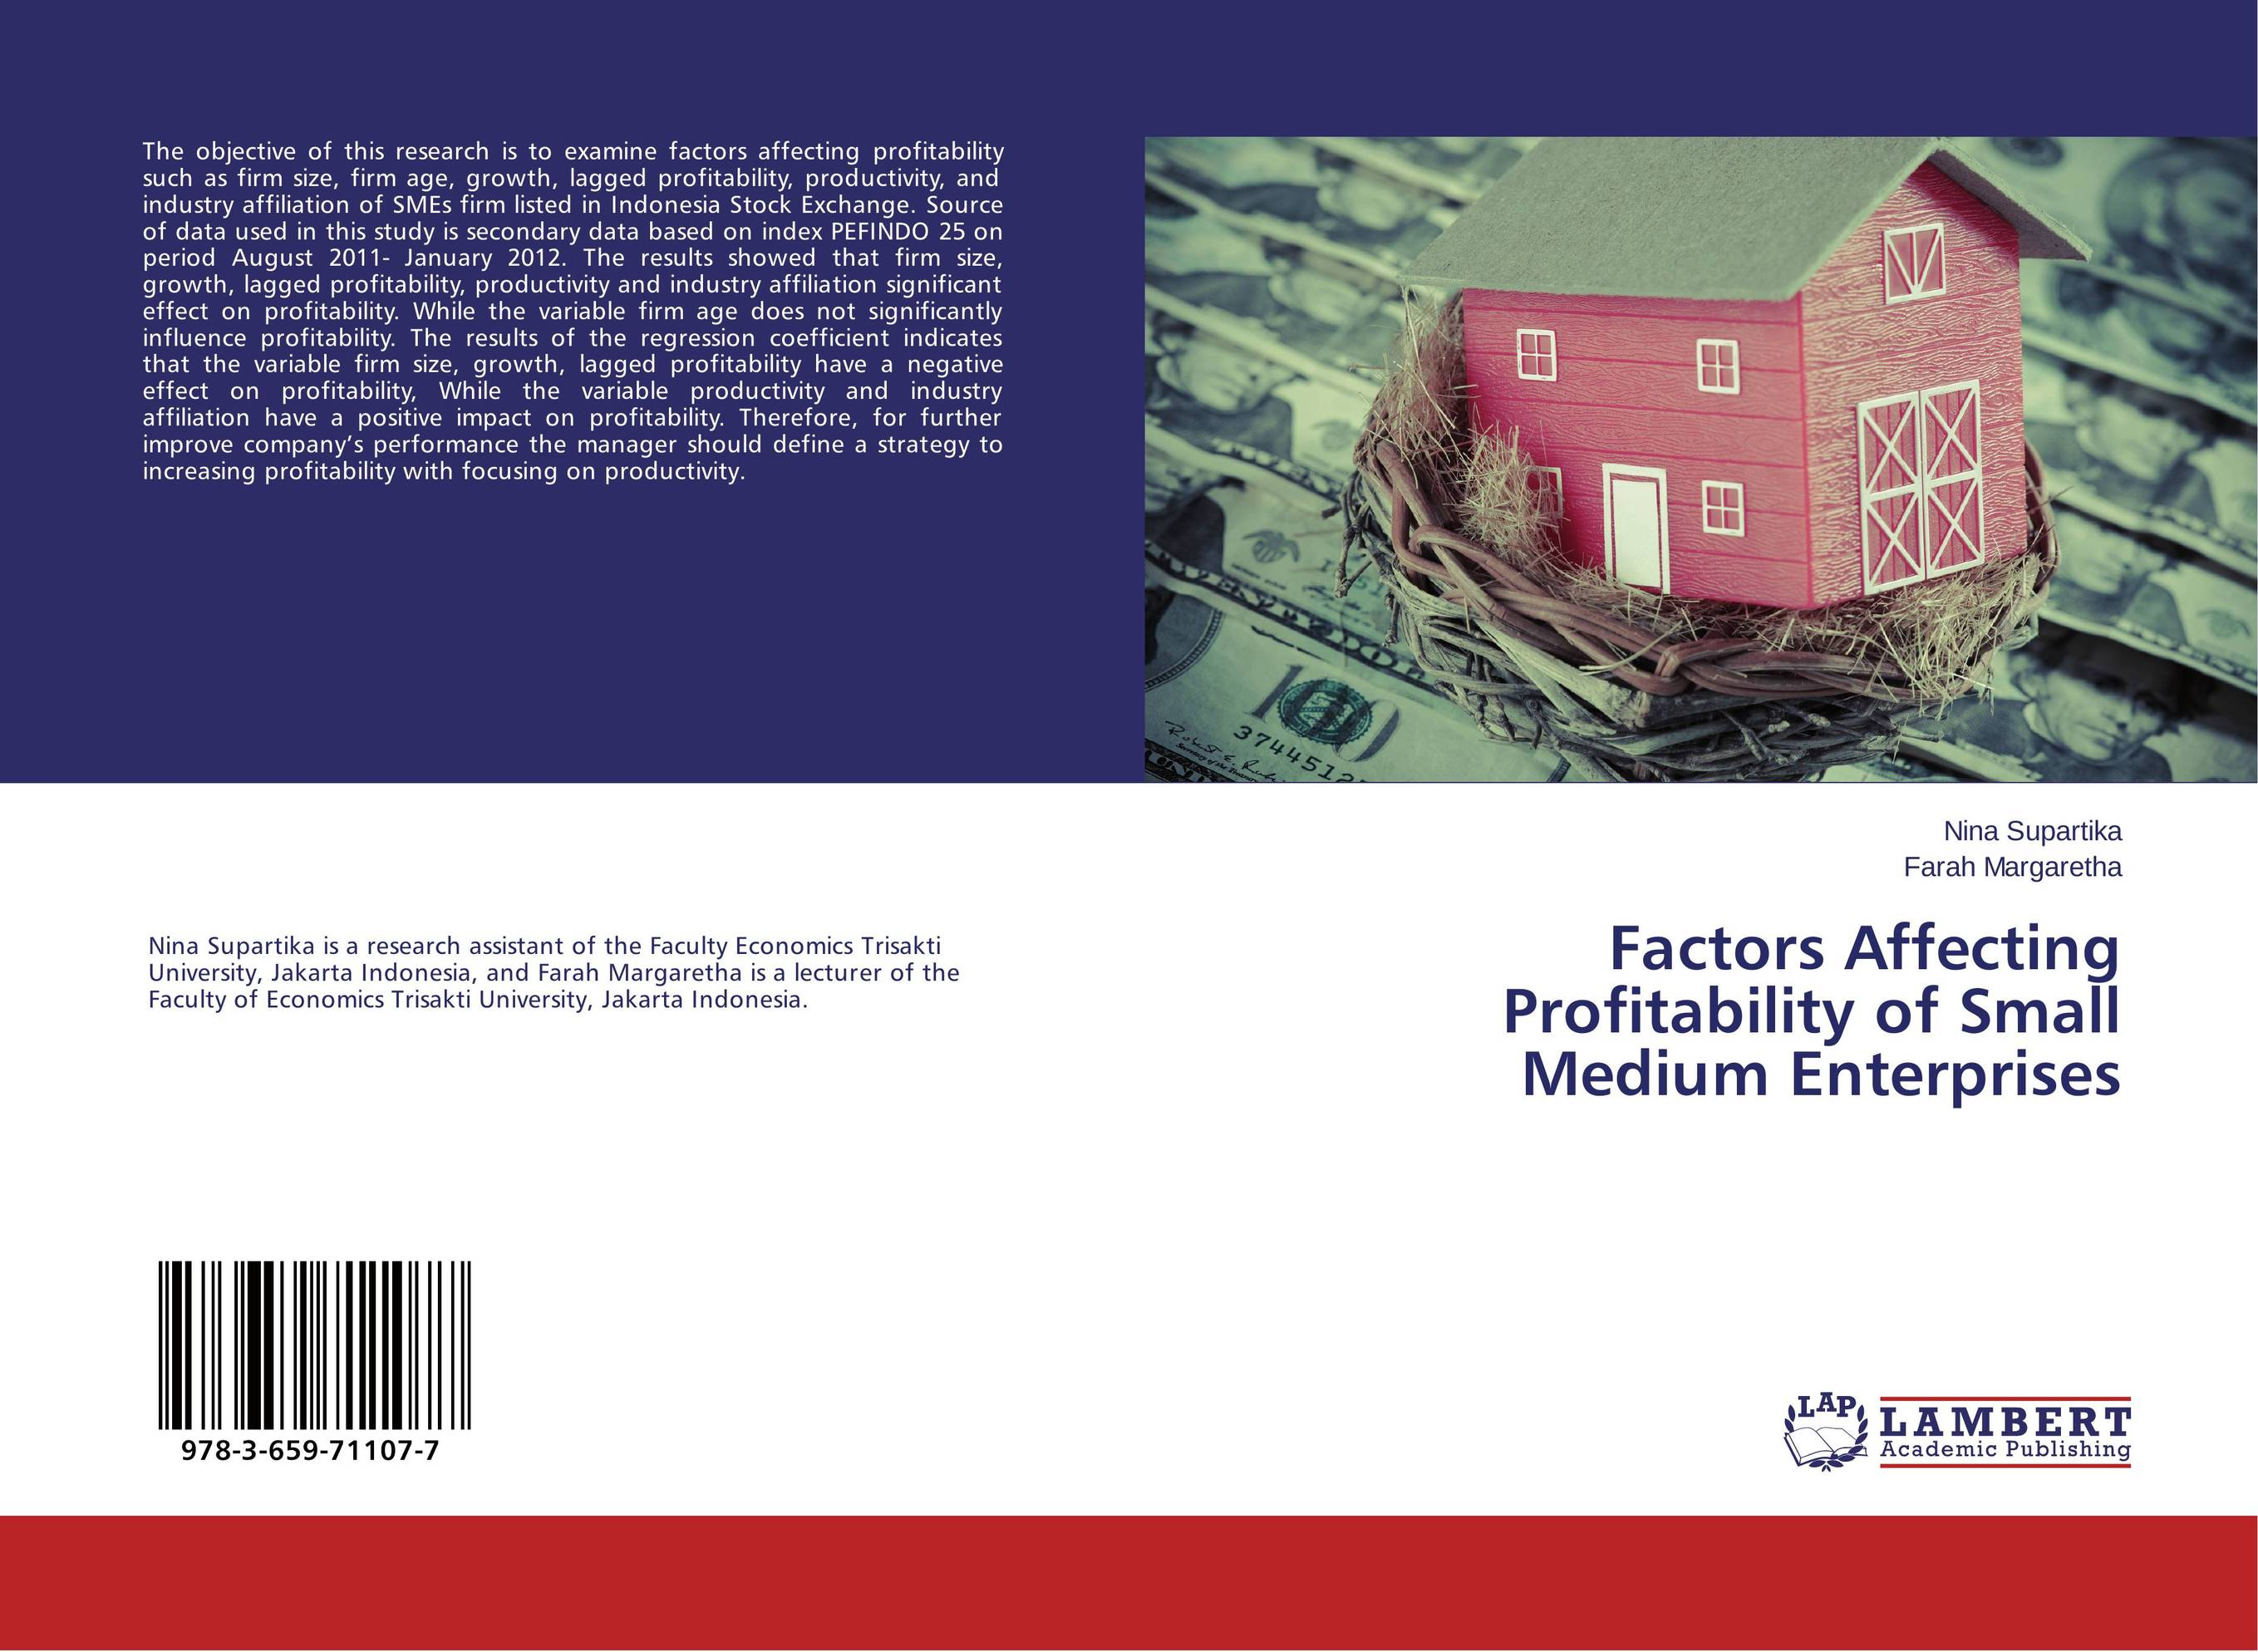 Factors Affecting Profitability of Small Medium Enterprises the firm